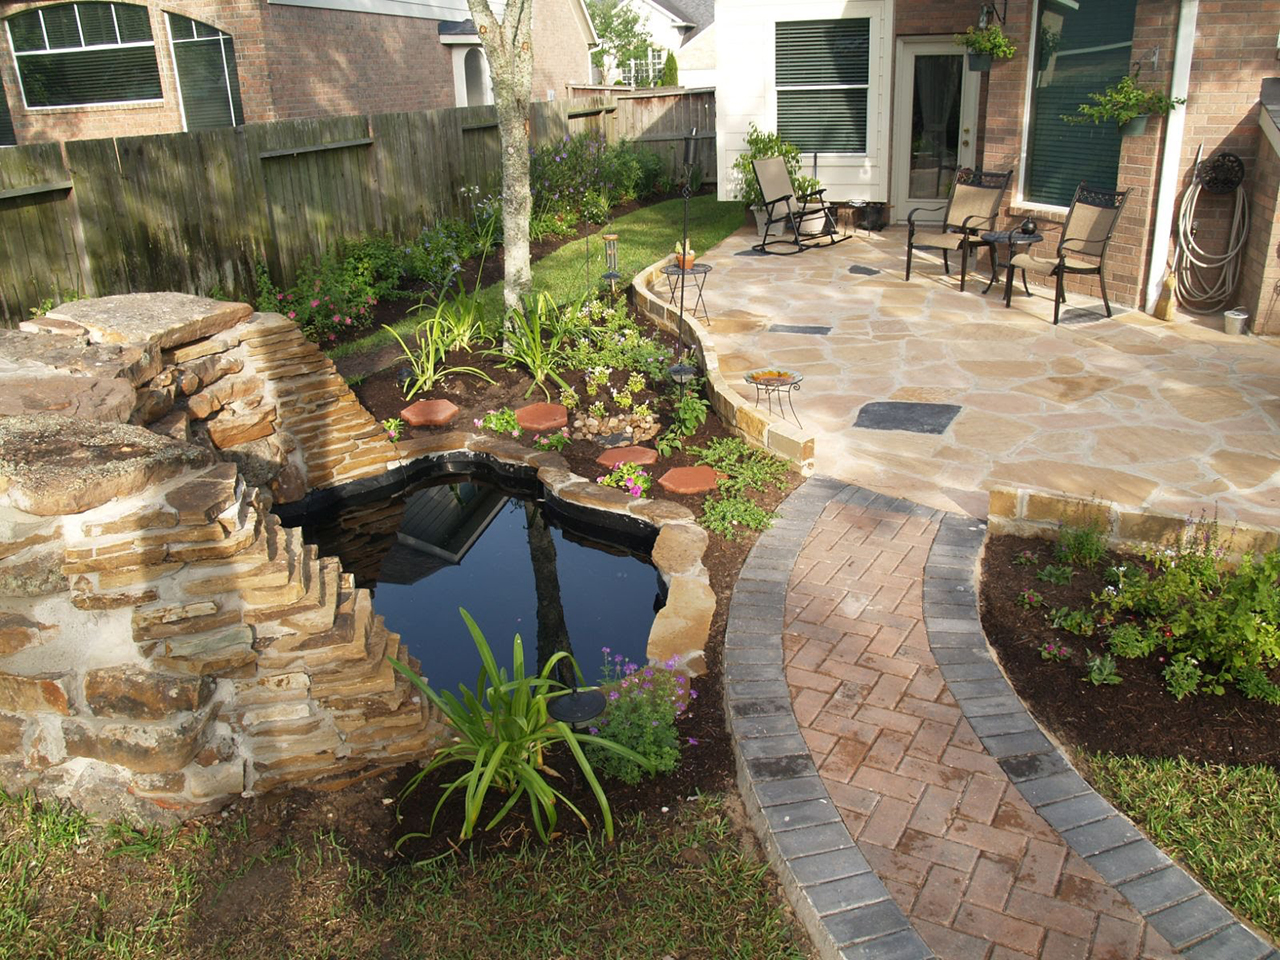 50 Best Backyard Landscaping Ideas and Designs in 2017 on Back Patio Landscape Ideas id=91750